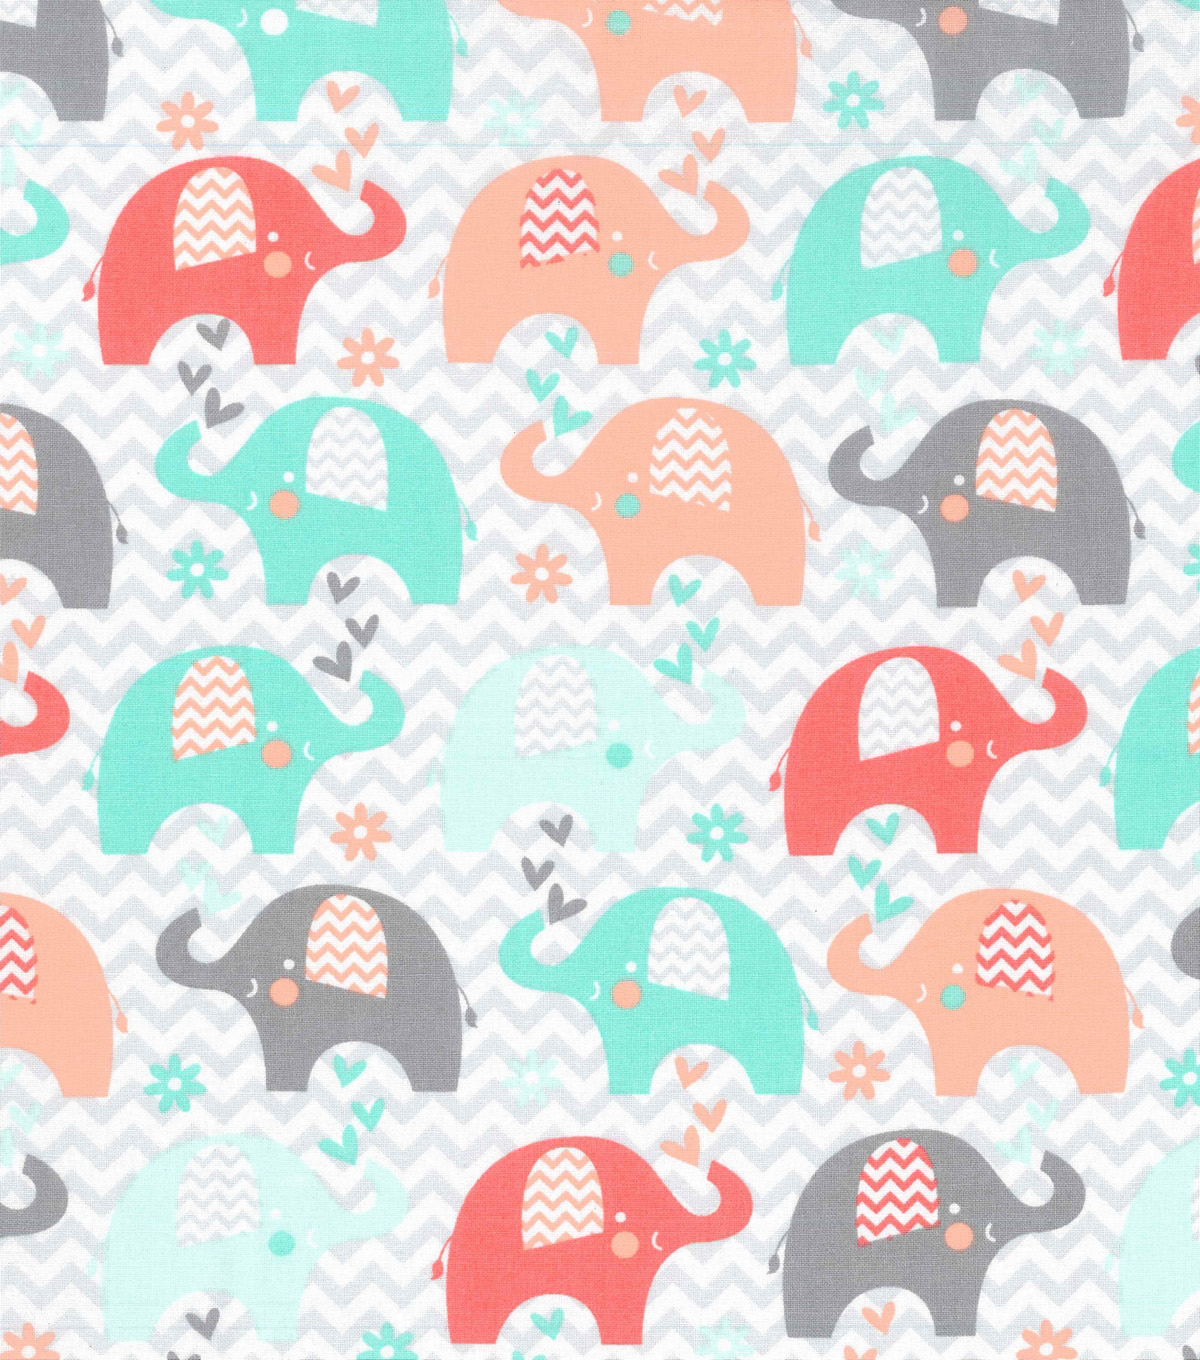 Nursery Cotton Fabric 43\u0022-Coral Dream Big Chevron Elephant